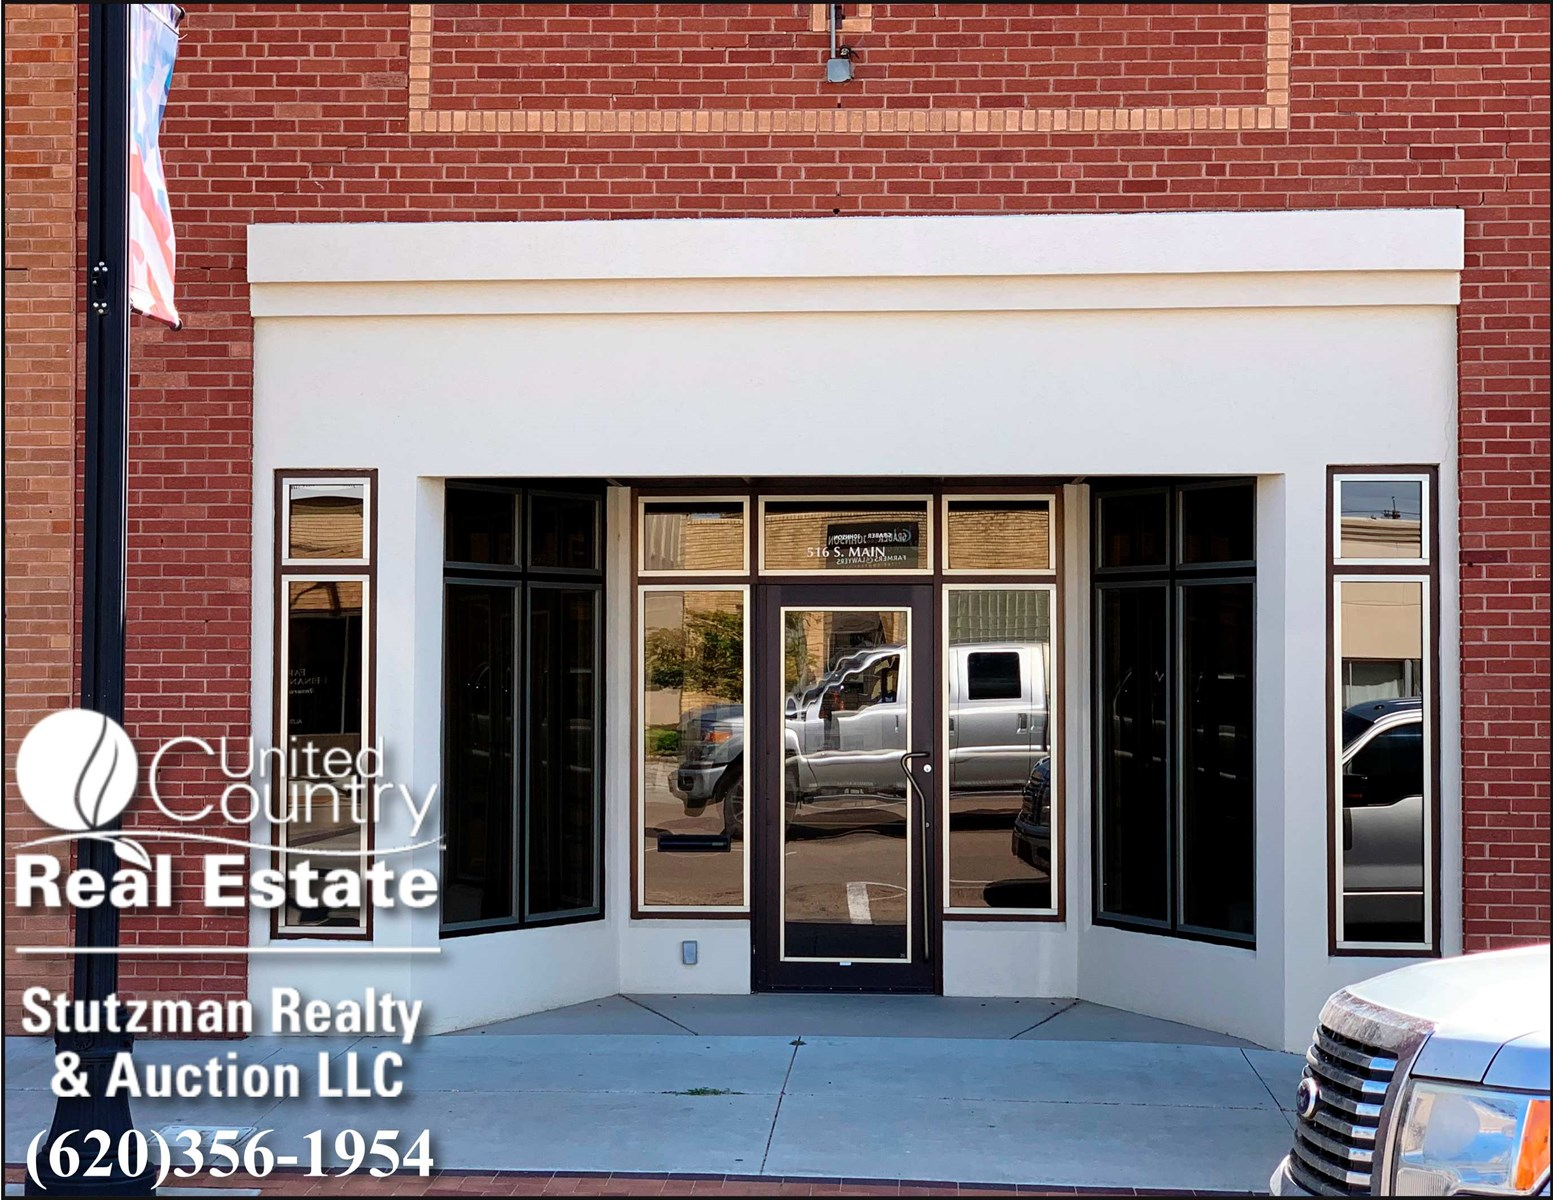 UPDATED AND HISTORIC OFFICE BUILDING FOR SALE IN HUGOTON, KS